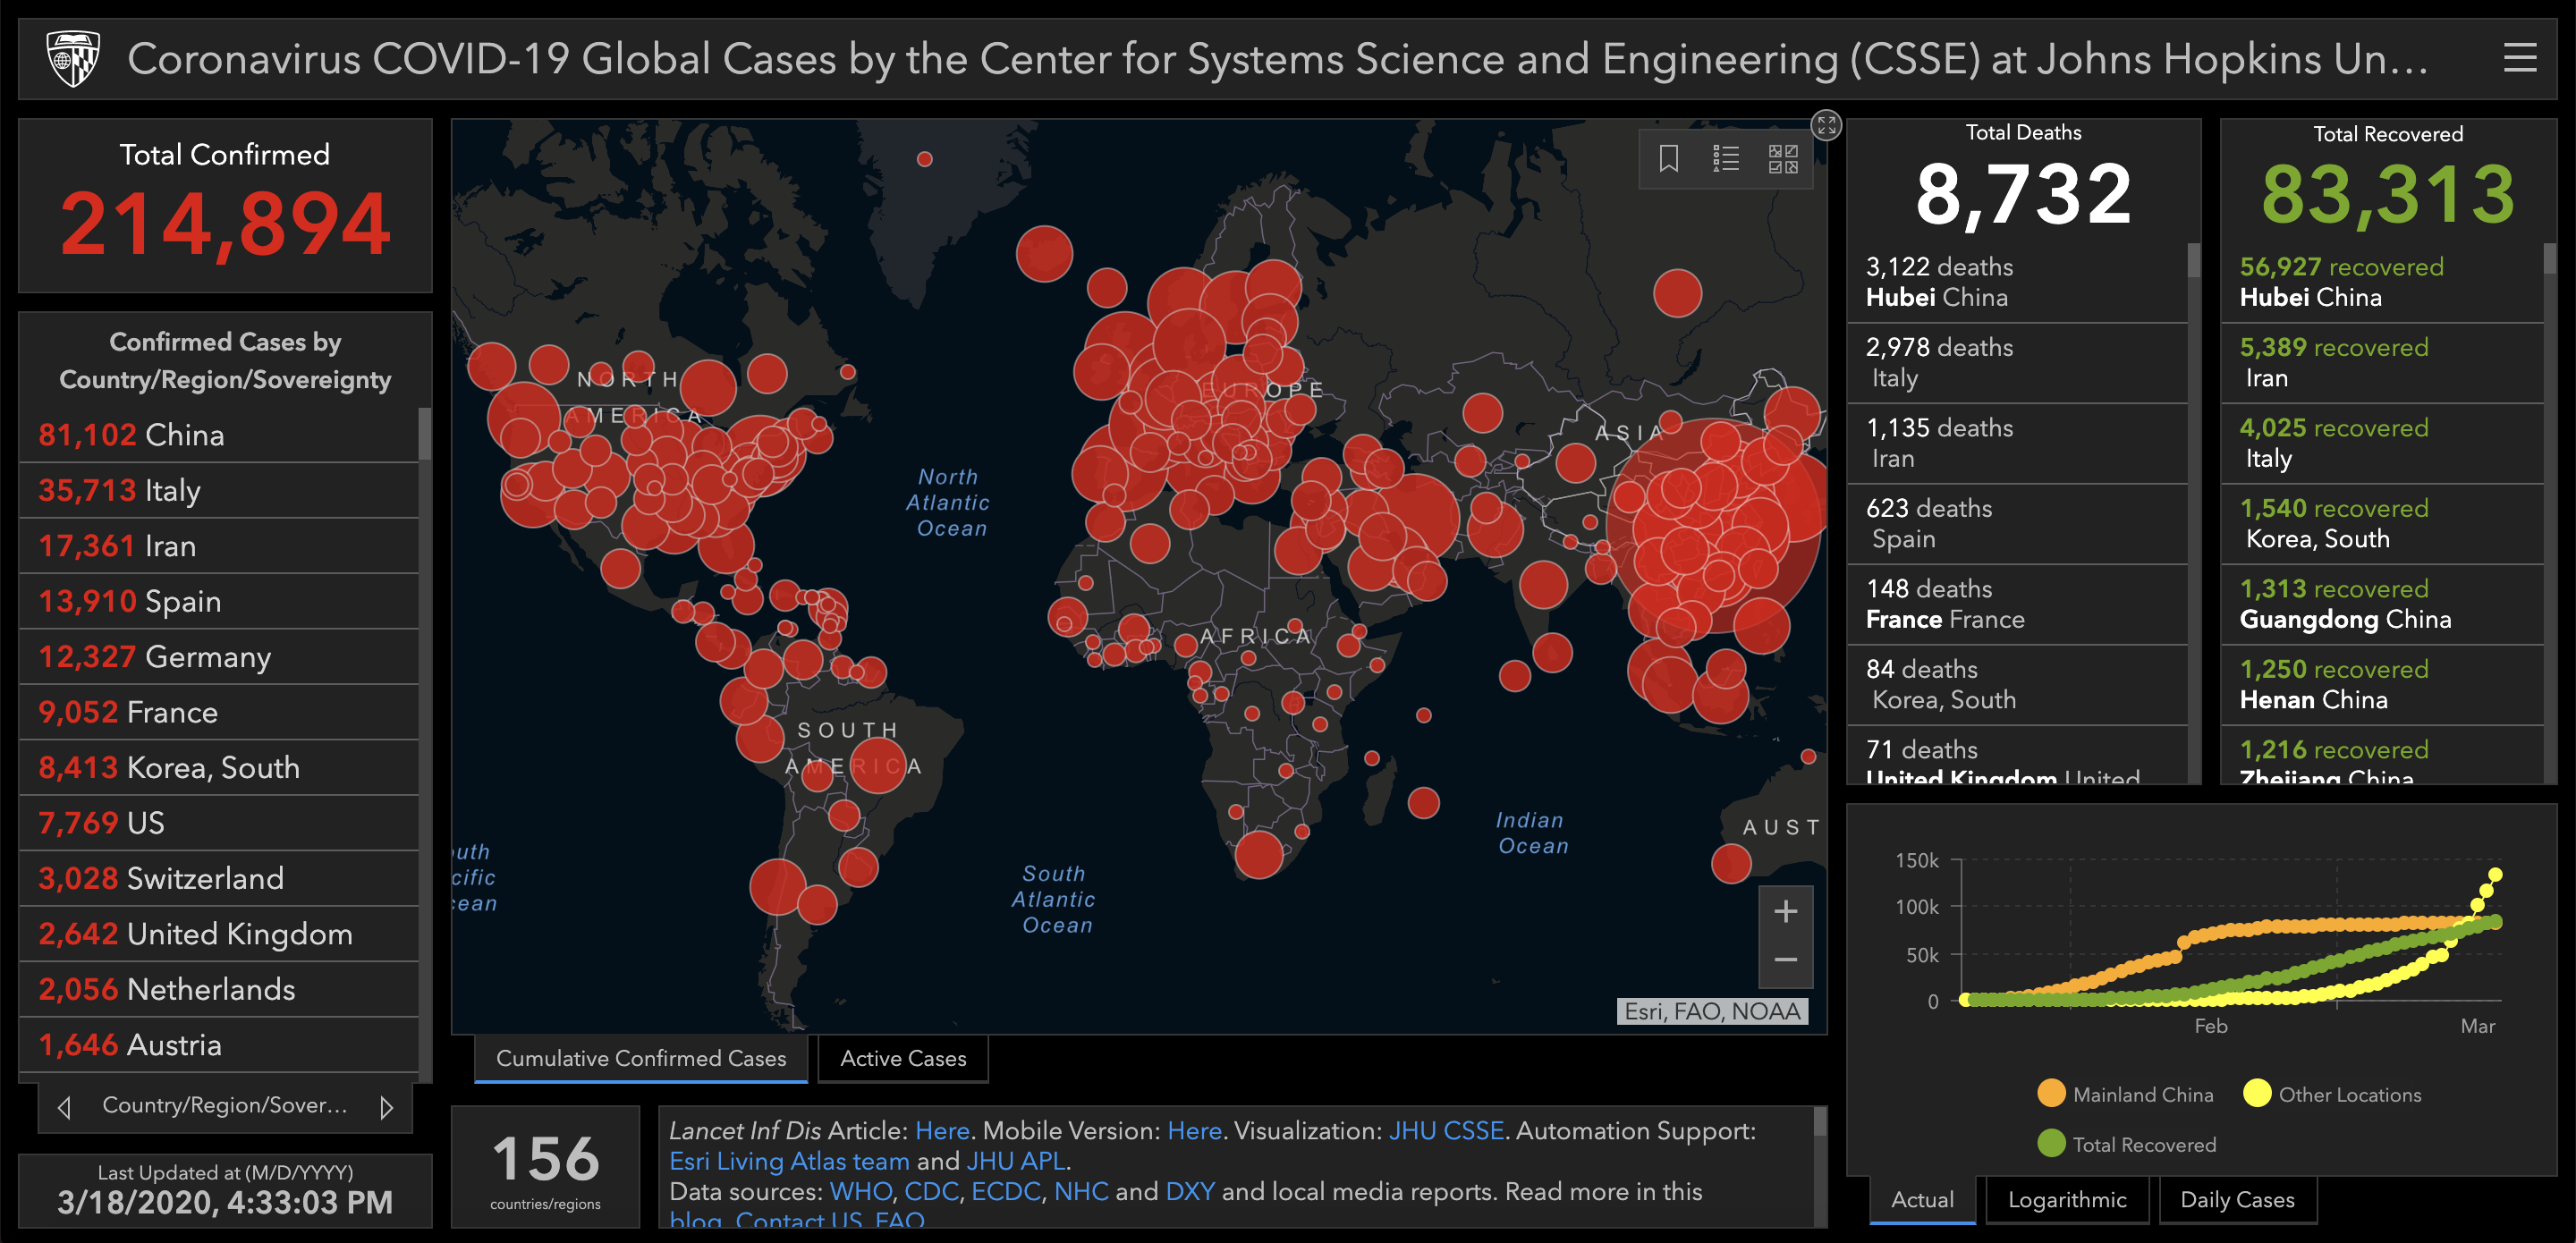 source: Screenshot of Dashboard, by Center for Systems Science and Engineering (CSSE). Public Domain.